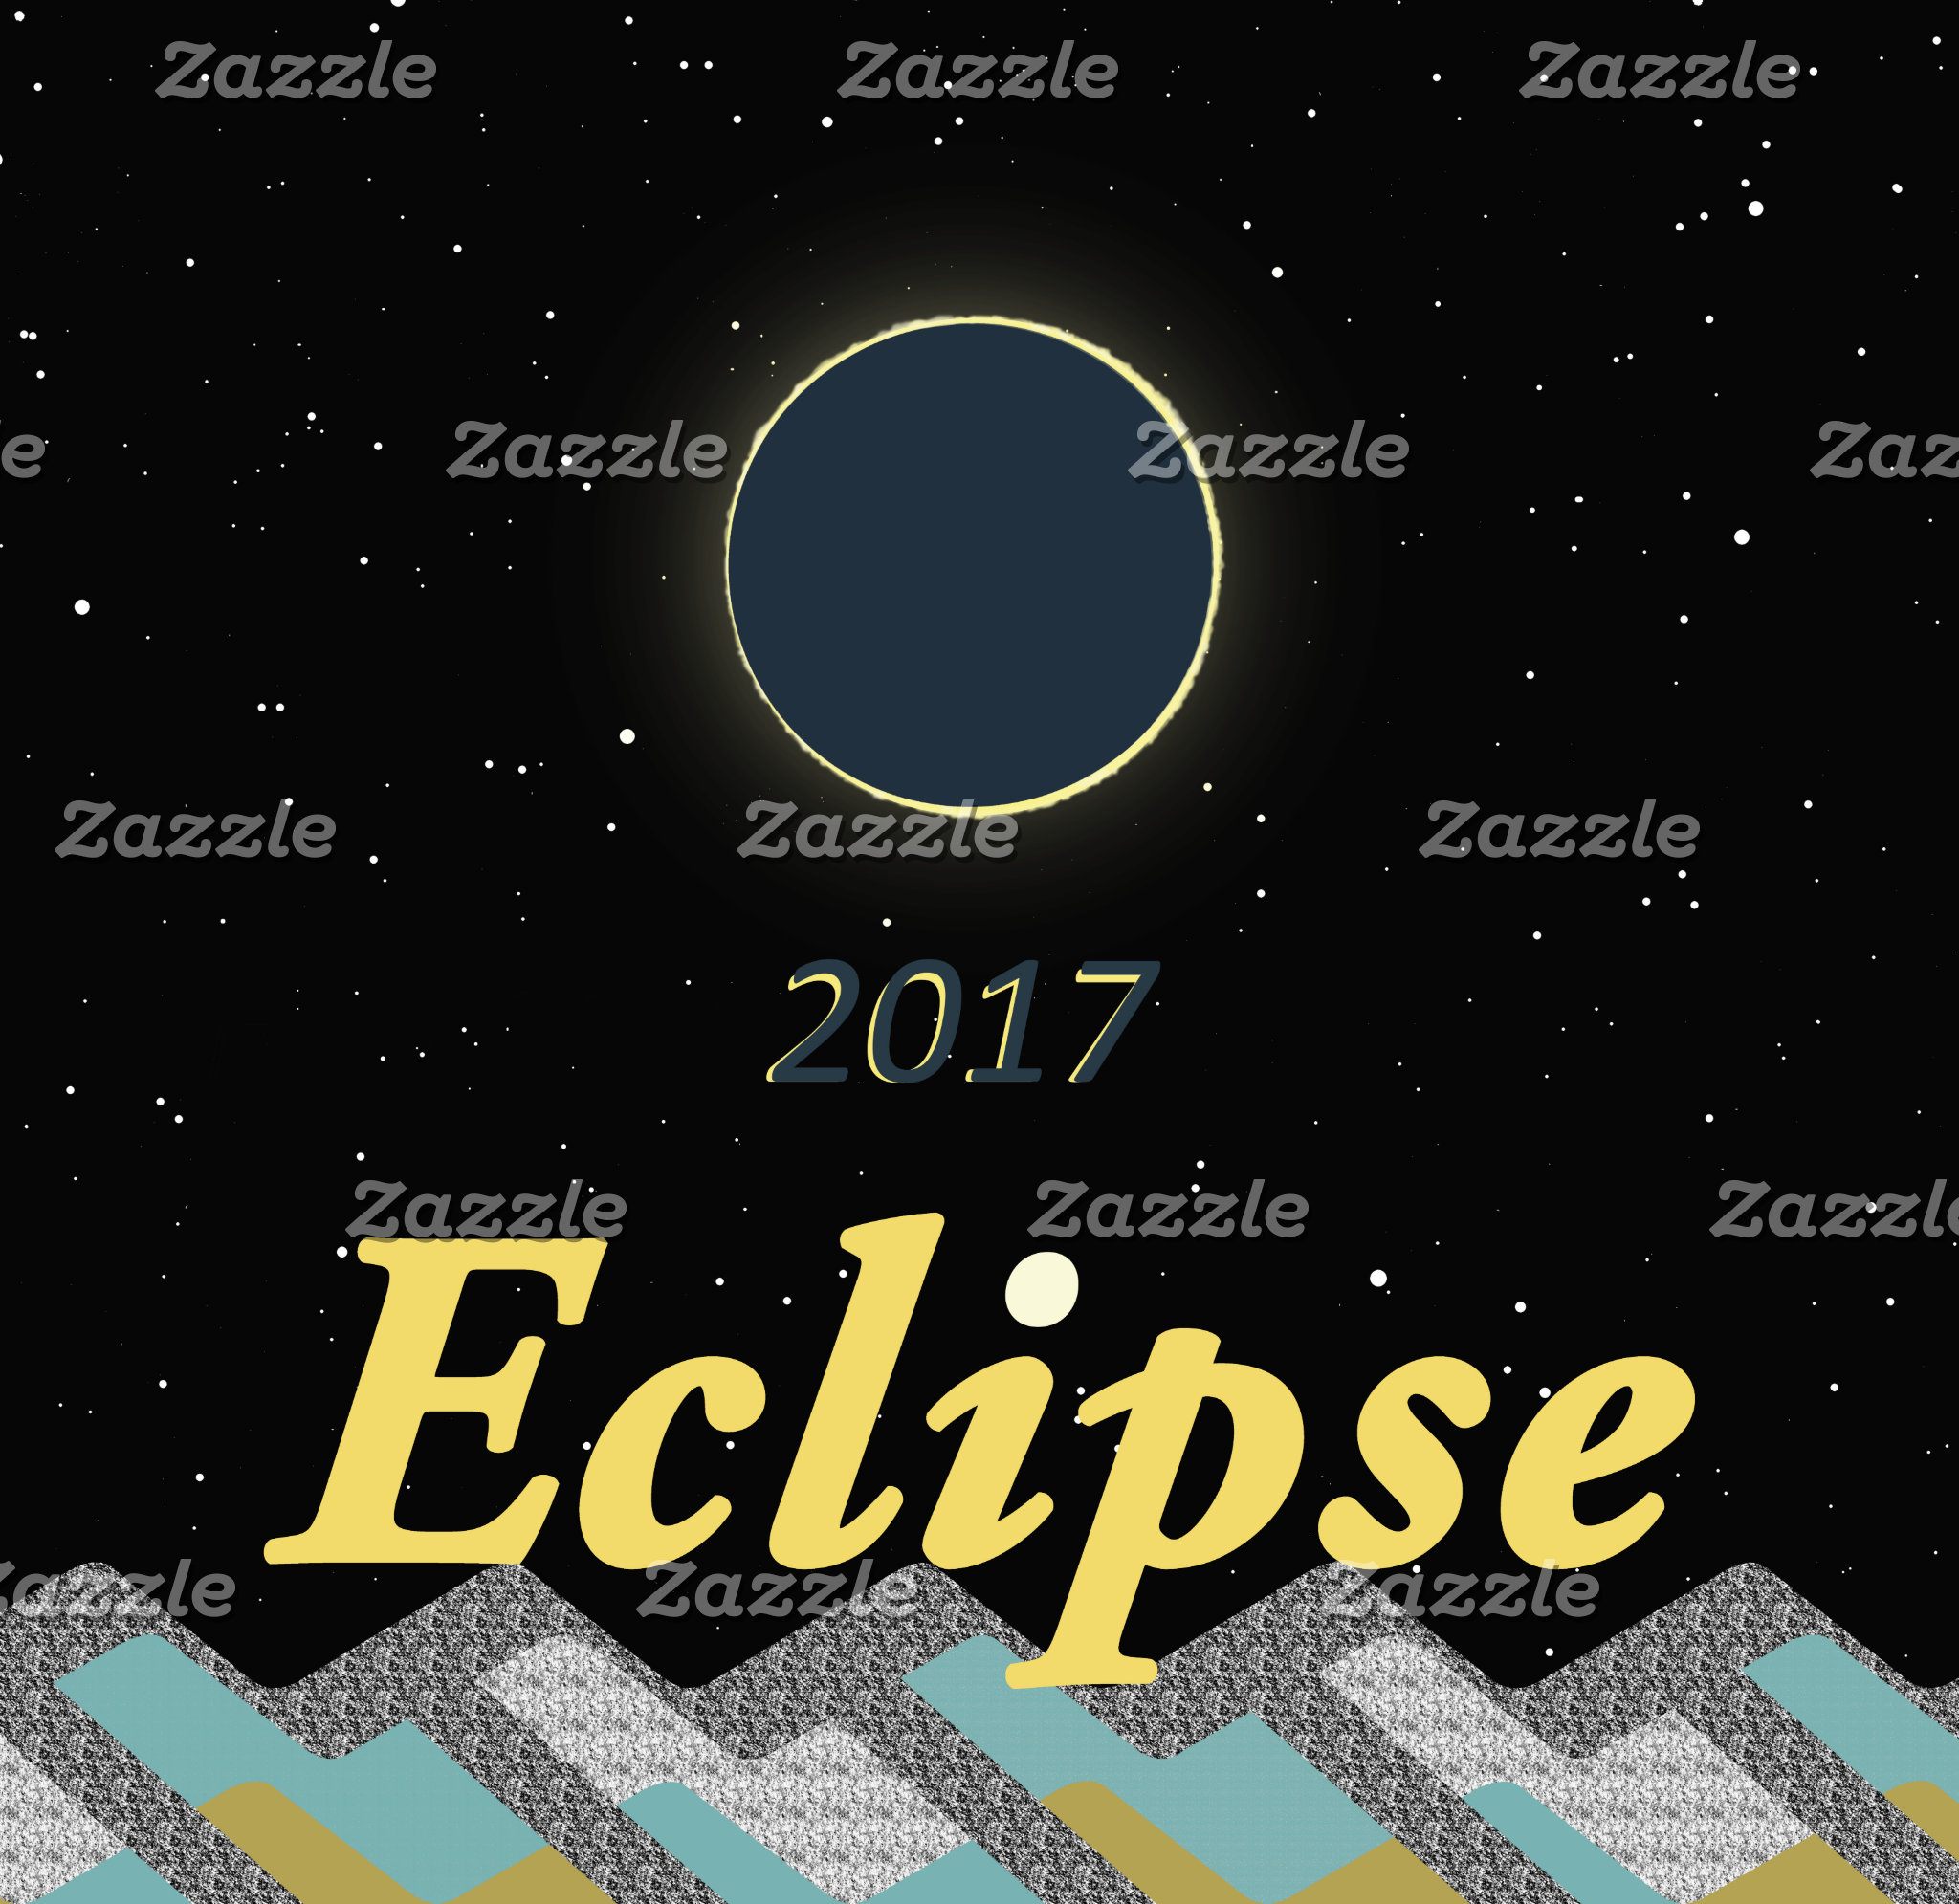 Astronomy/Space/Eclipse